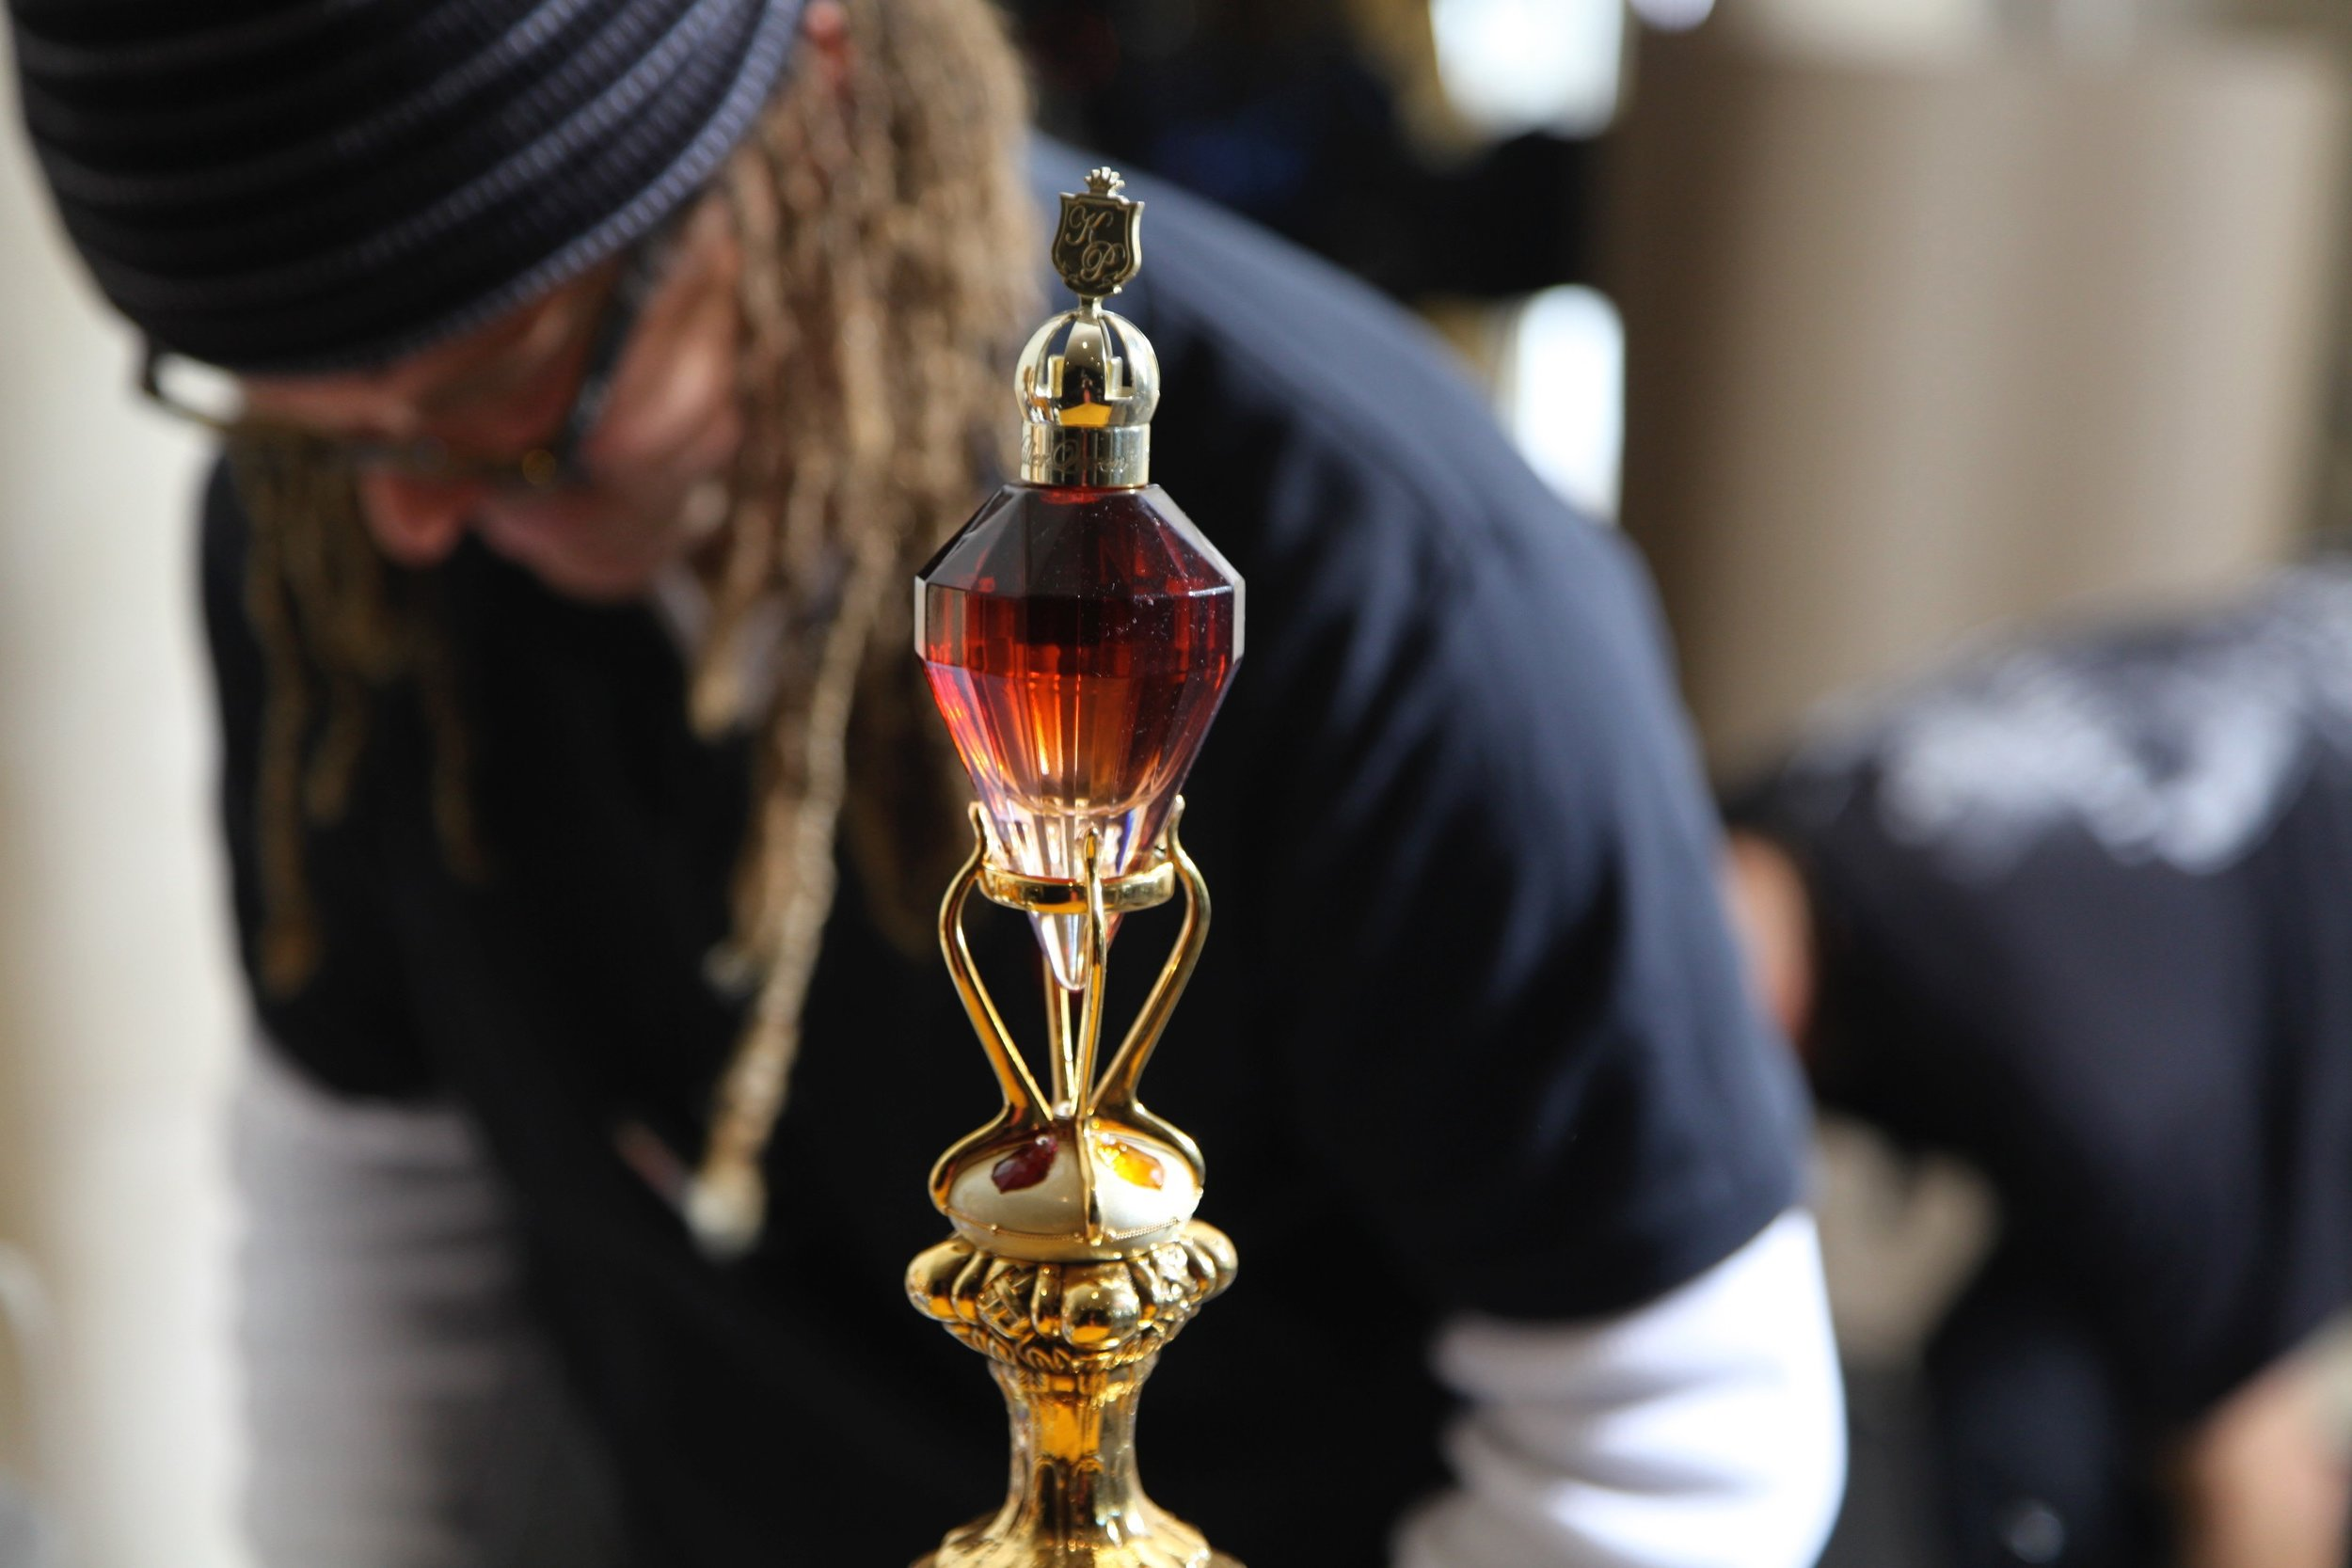 Simon Morgan drew up the beautiful sceptre that needed to hold the perfume bottle and John Merritt cast it.